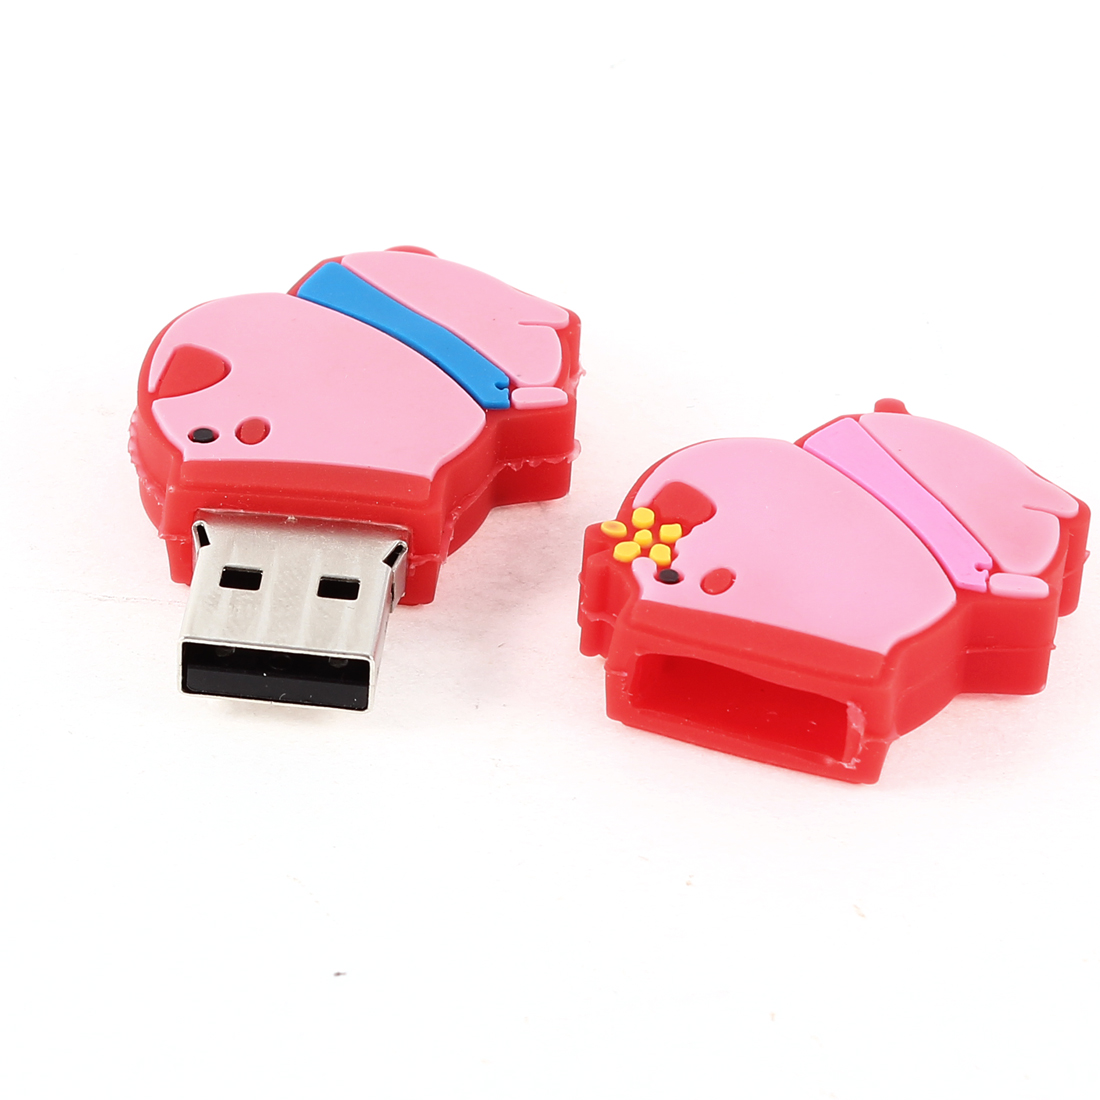 Pink Red Rubber Pig Cover USB 2.0 Flash Drive Memory Disk Storage 4GB